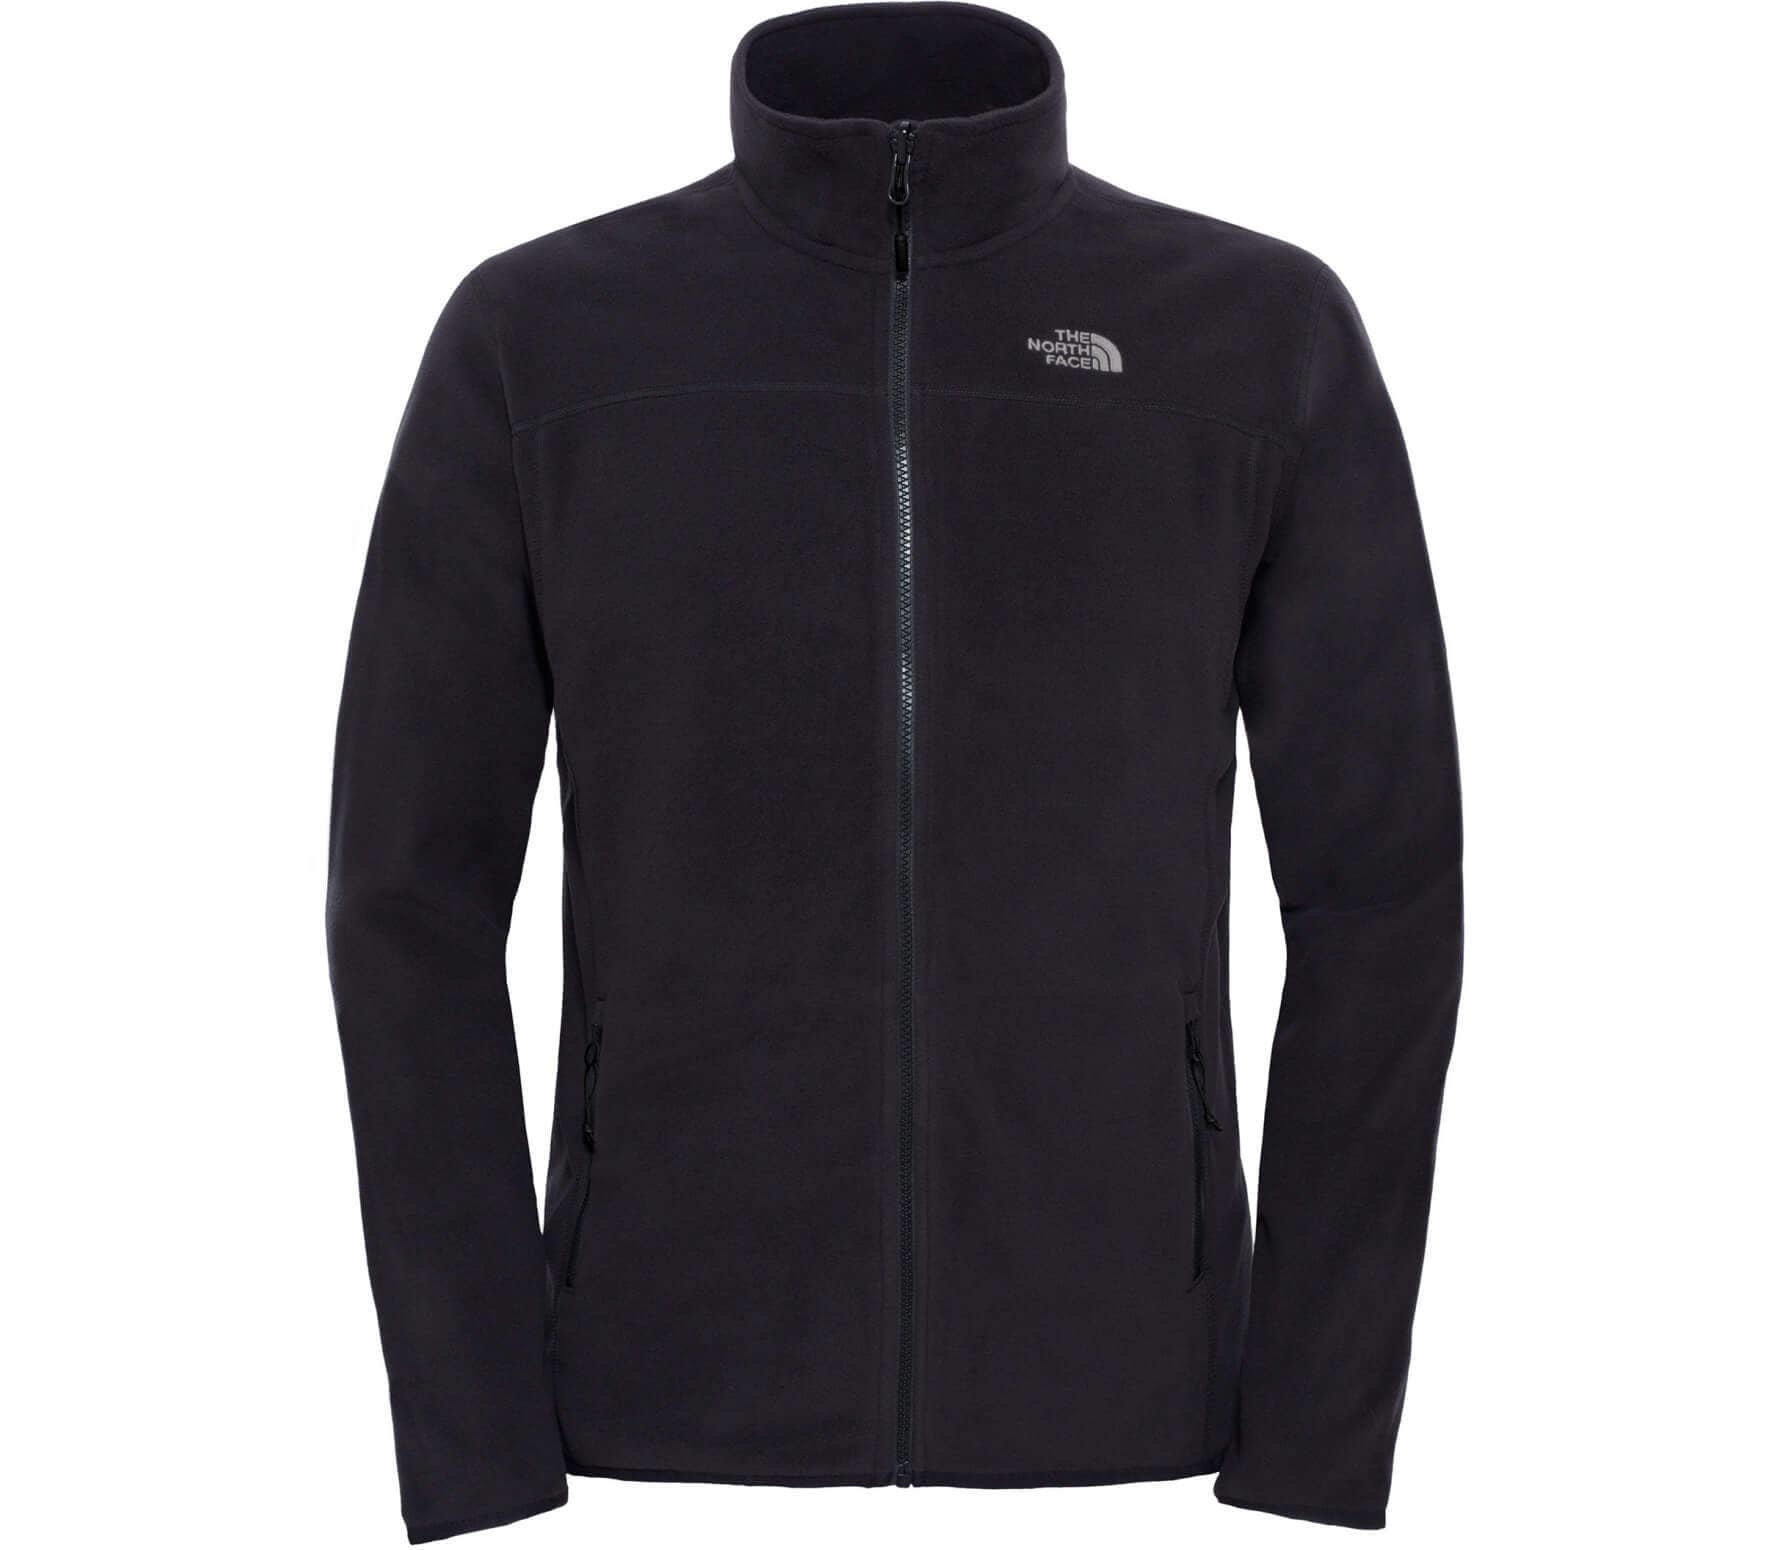 100 Glacier Full-Zip Fleece Jas Zwart